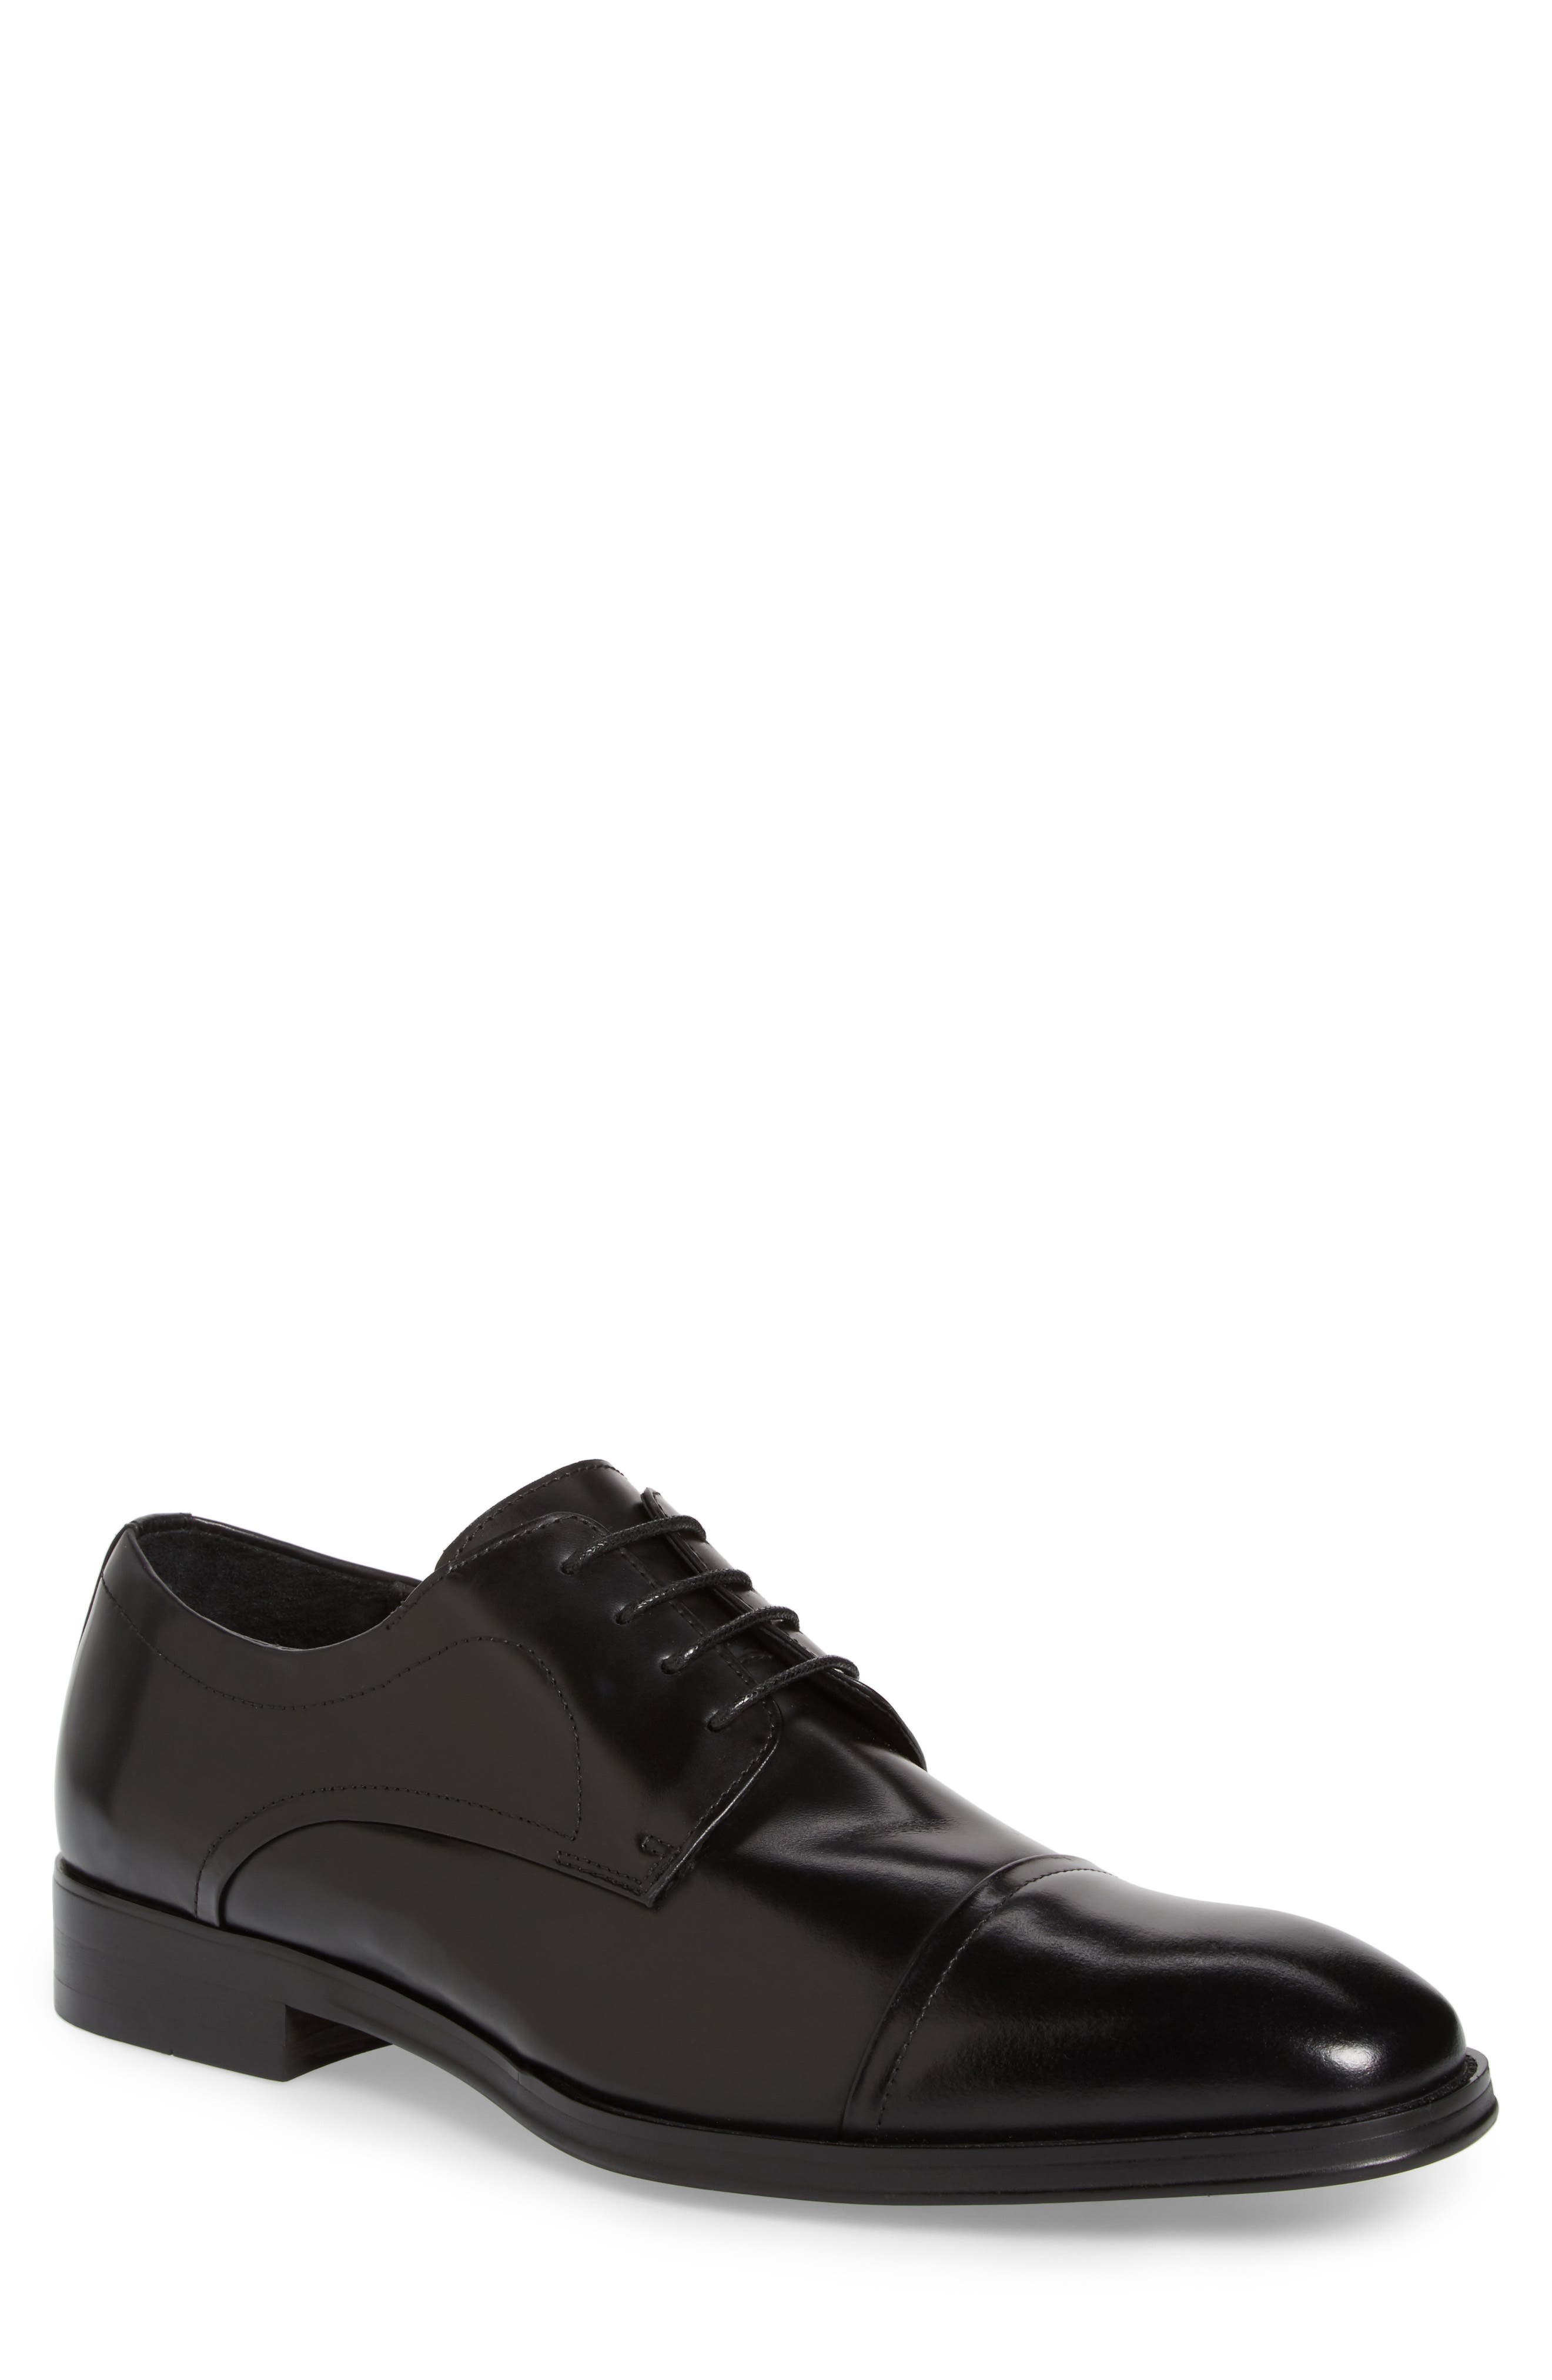 Kenneth Cole New York Light Jolt Cap Toe Derby (Men)